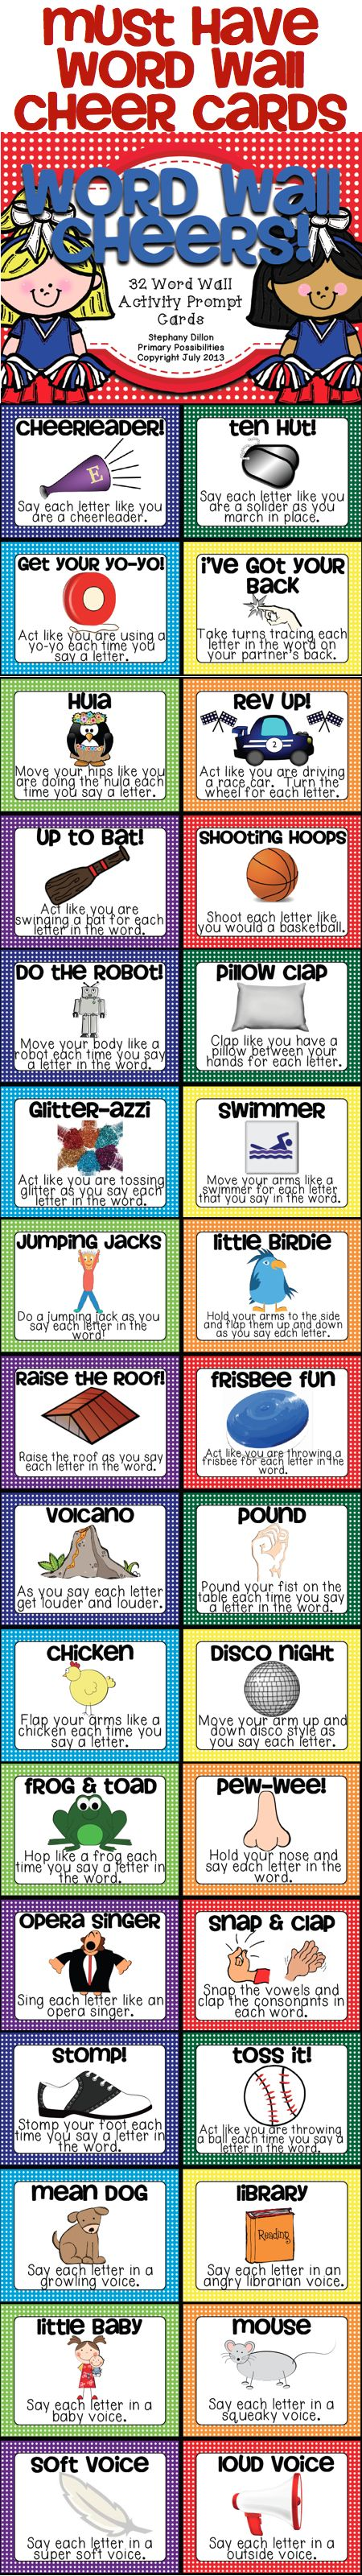 Must have Cheer Cards for your Word Wall...  Use to get your students motivated to learn the sight words! $